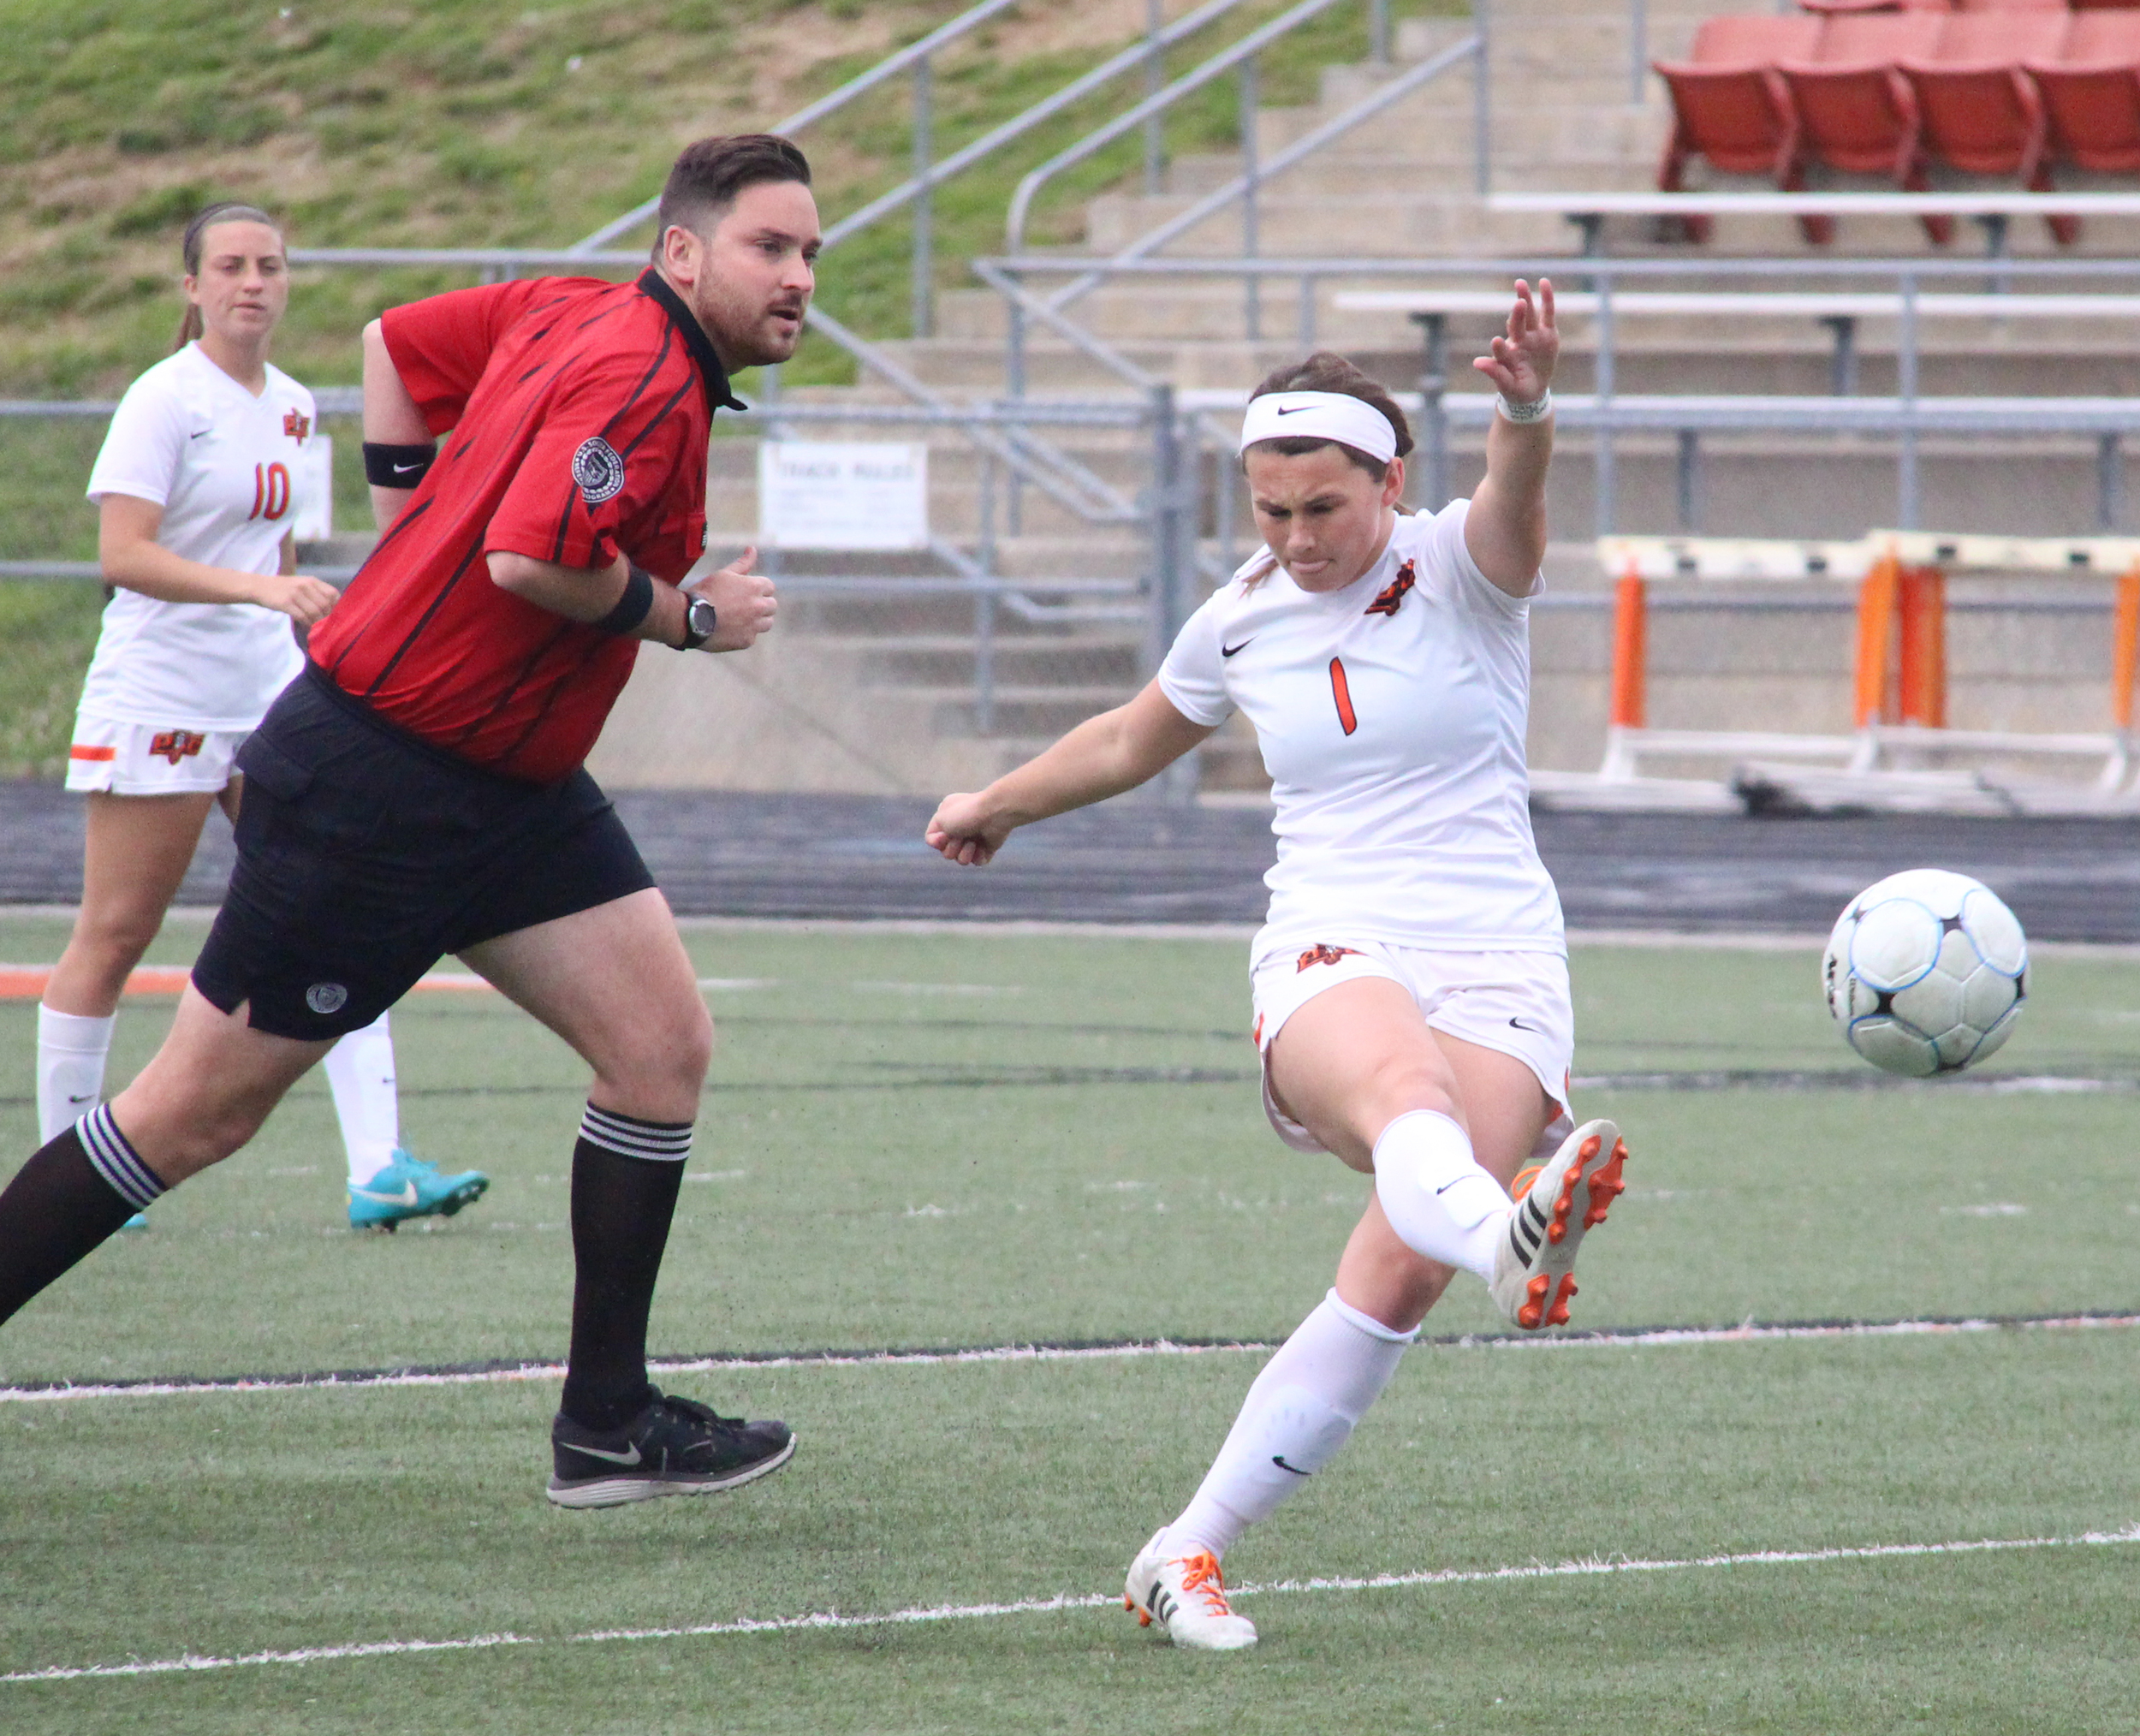 ROSS MARTIN/Citizen photo Platte County senior midfielder Brooke Zenner hits a pass during the first half of the Class 3 District 16 championship game against Smithville on Thursday, May 19 at Pirate Stadium.